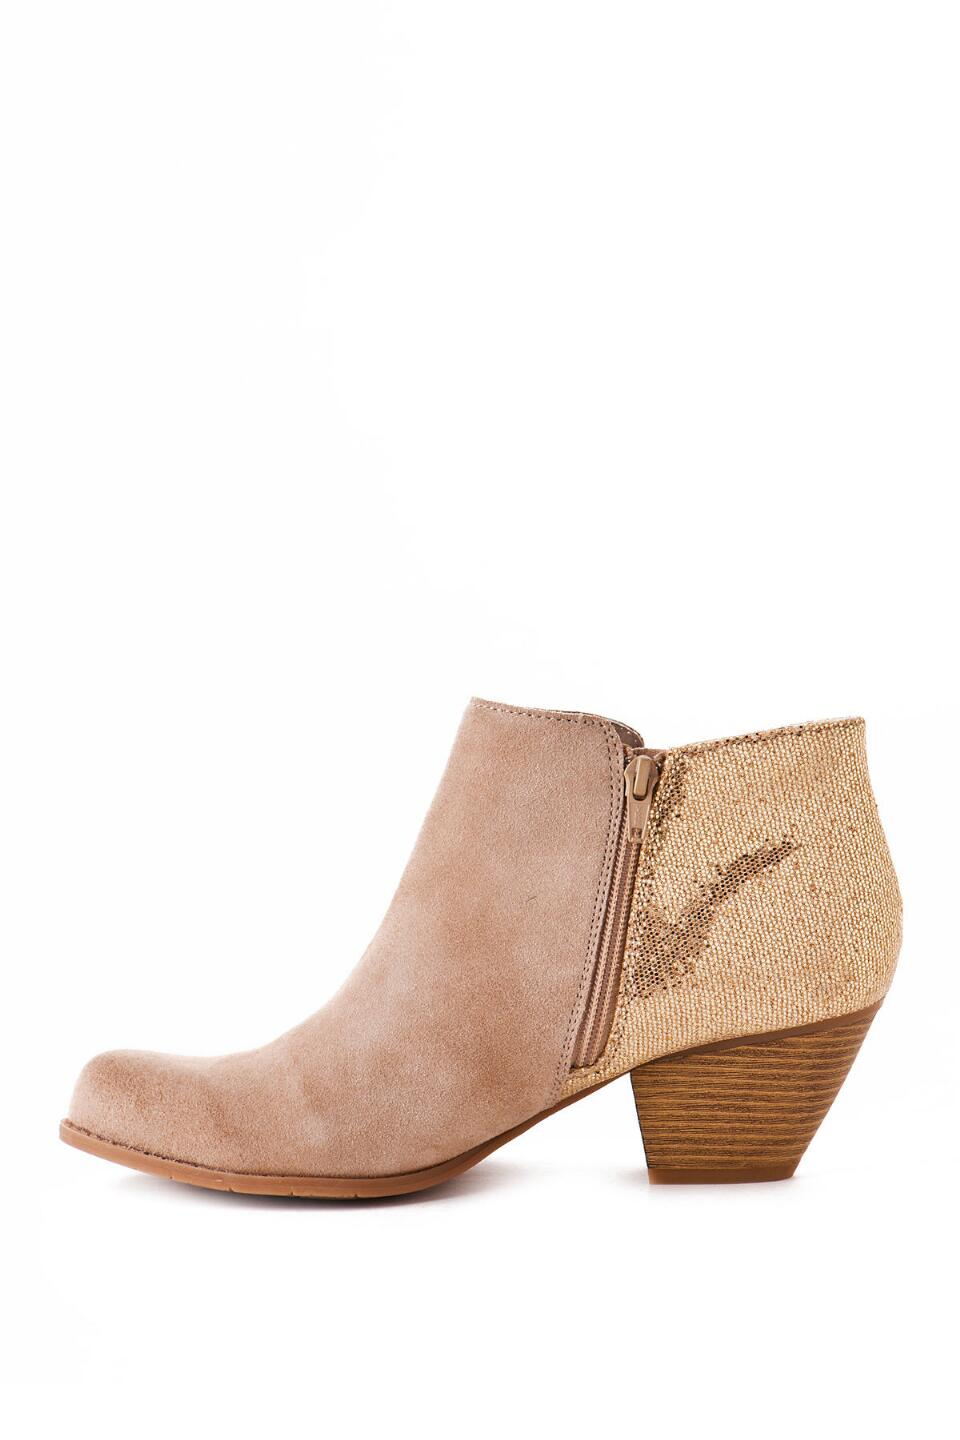 BC Footwear Shoes, Eager Beaver Metallic Bootie-  sand-clleft